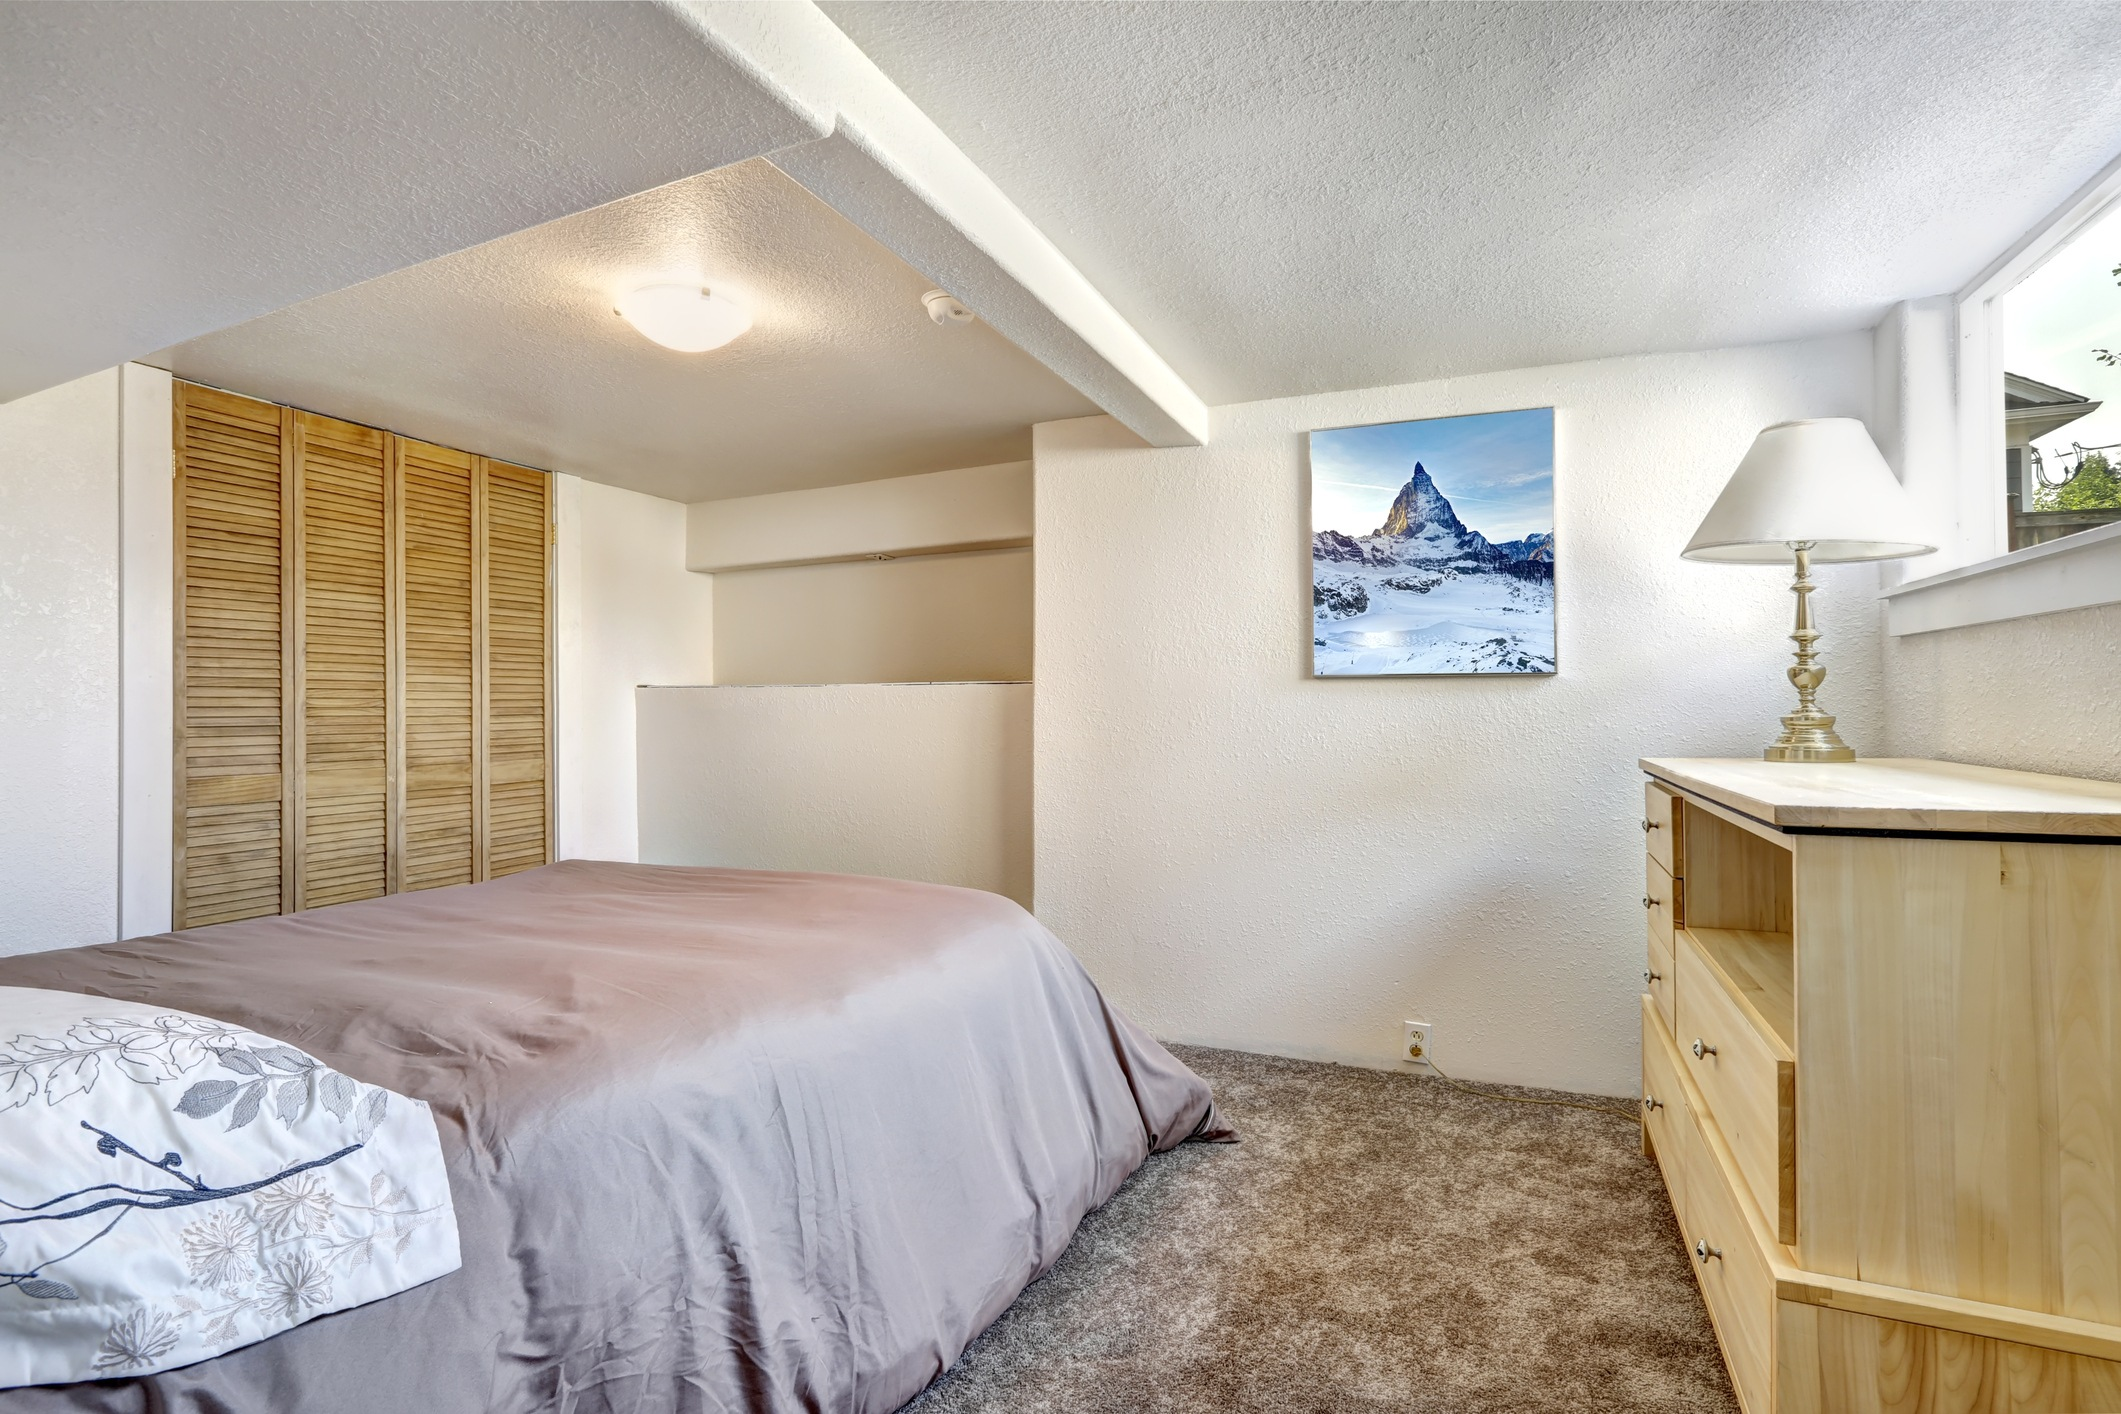 Bedroom with low ceilings and carper